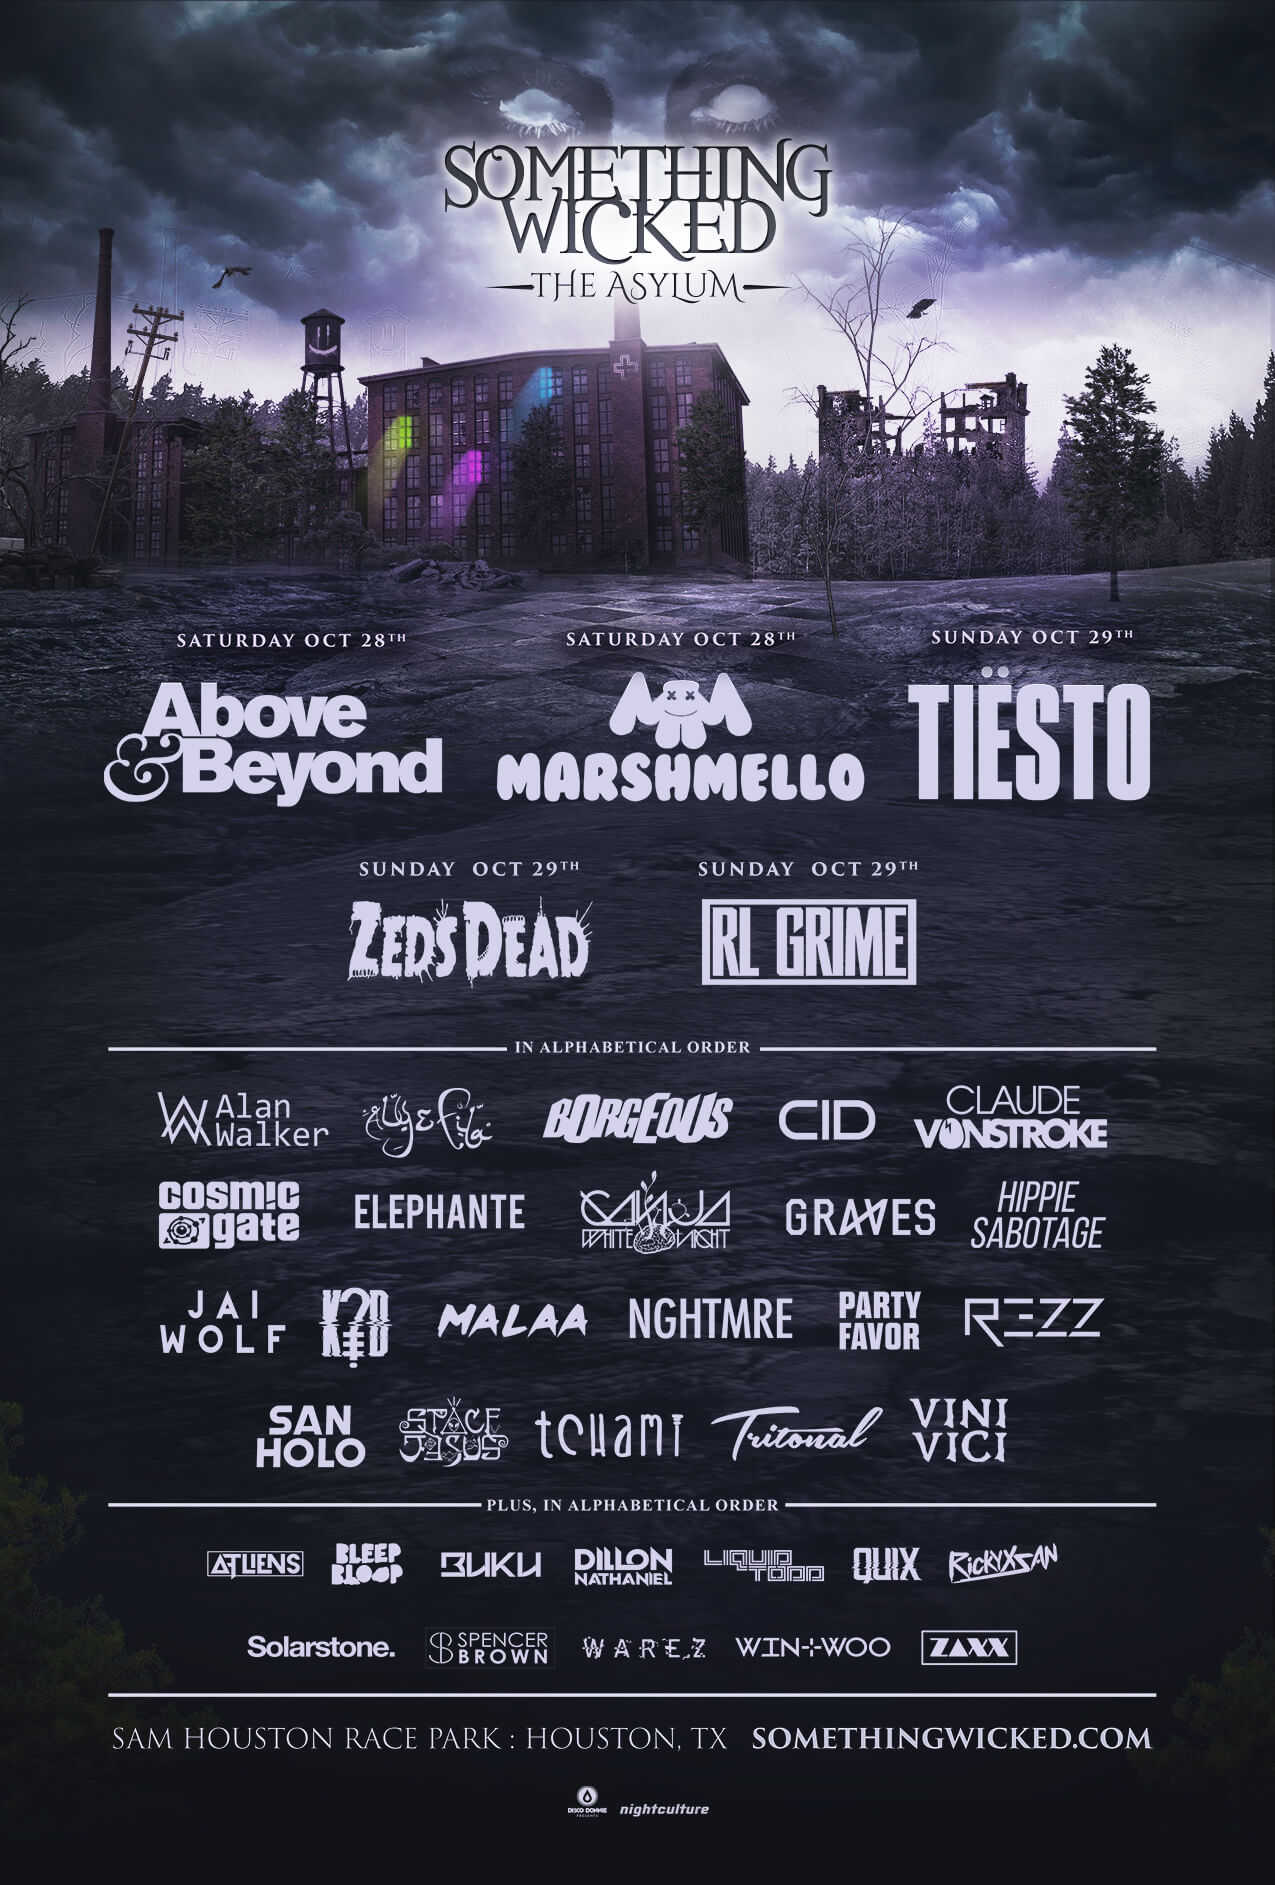 Something Wicked: The Assylum 2017 Lineup